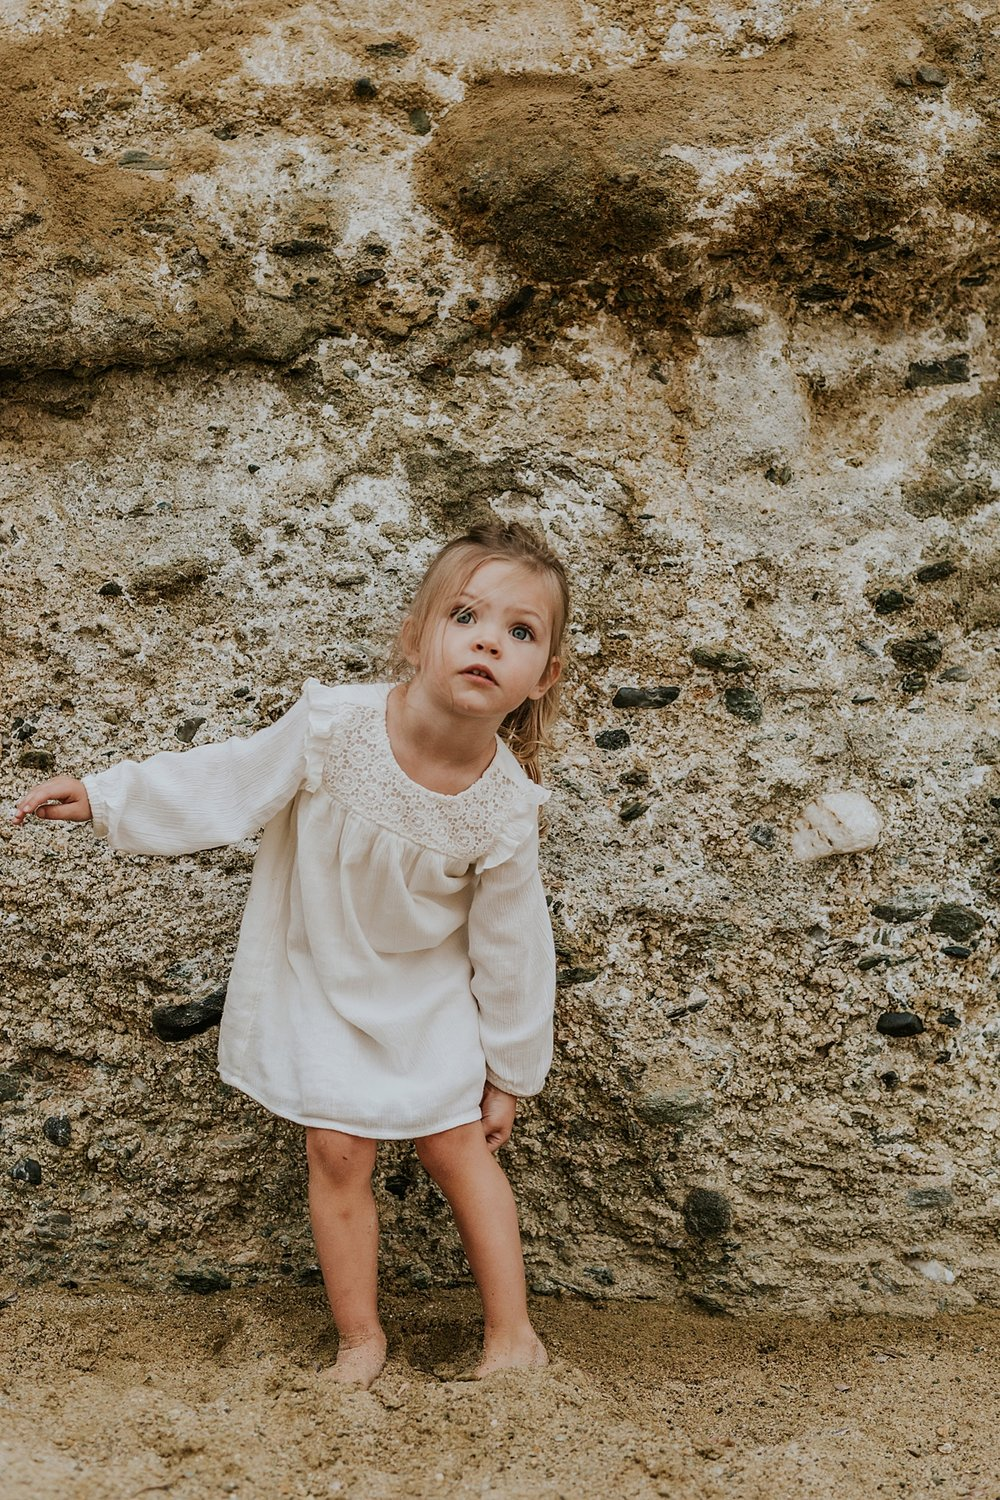 Orange County family photographer. Two year old girl candidly poses in front of bluffs at Table Rock Beach Laguna Beach during photo session with Krystil McDowall Photography